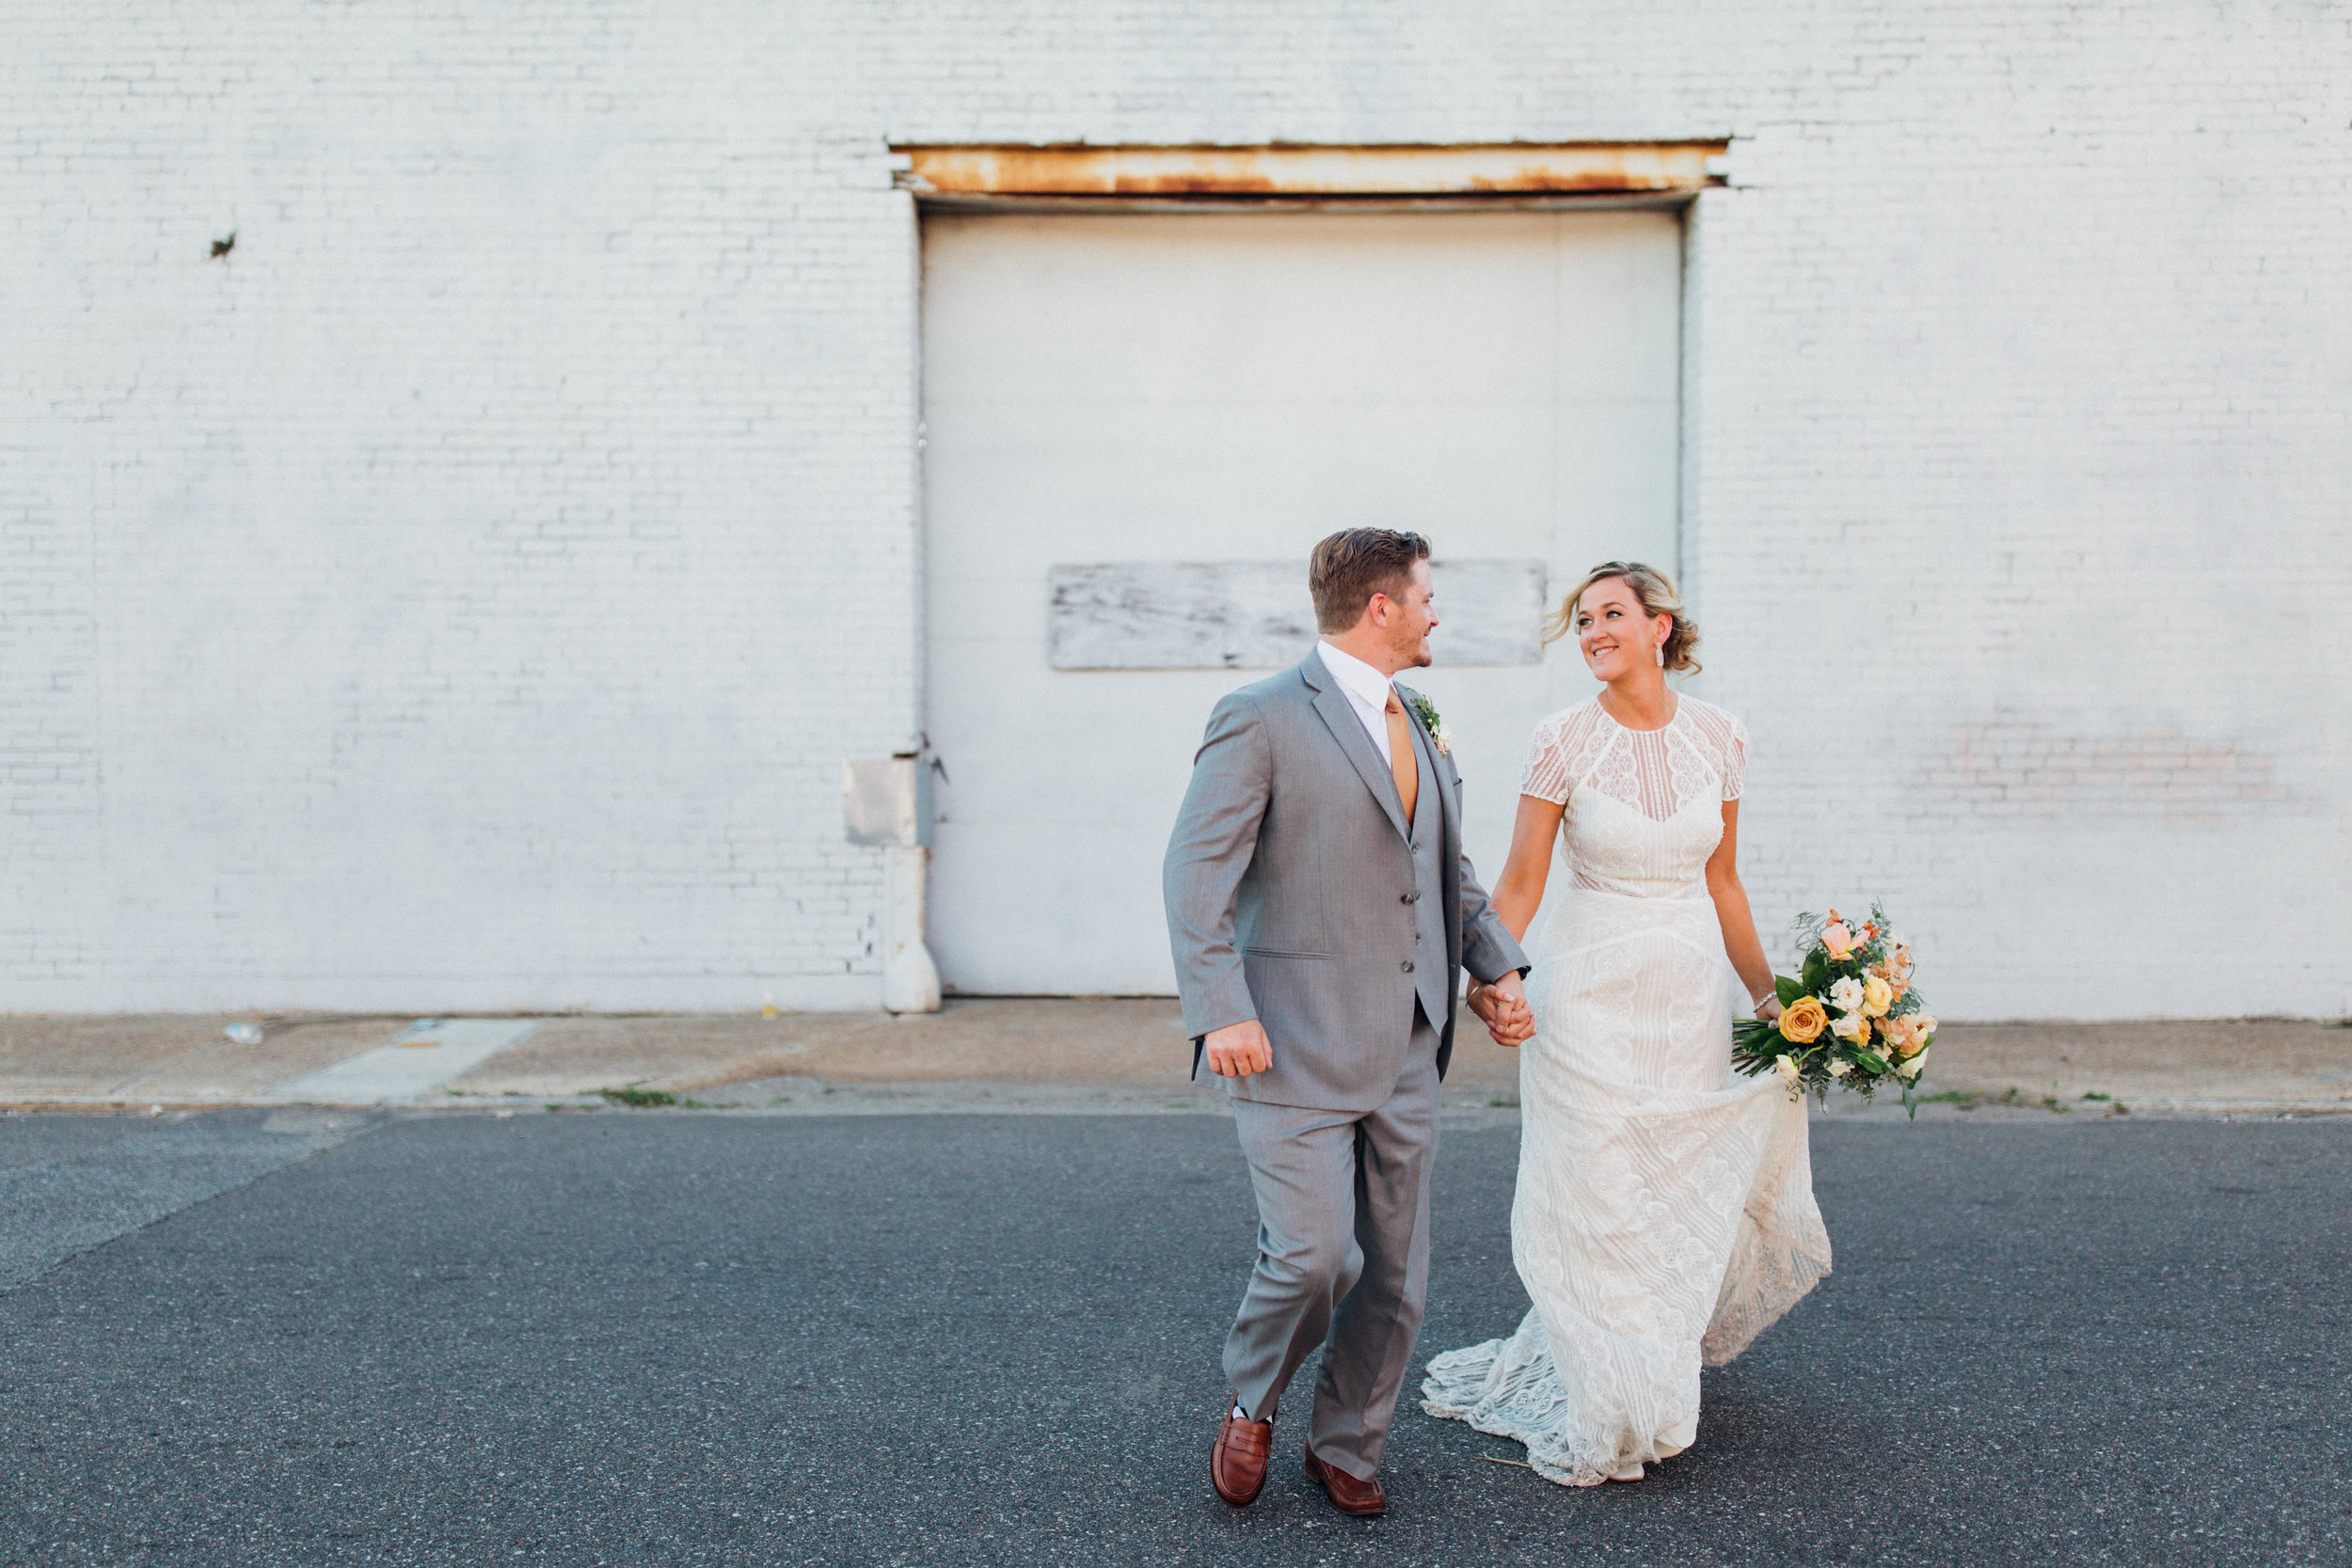 christinakarstphotography_glassfactorywedding_erin+alex-118.jpg